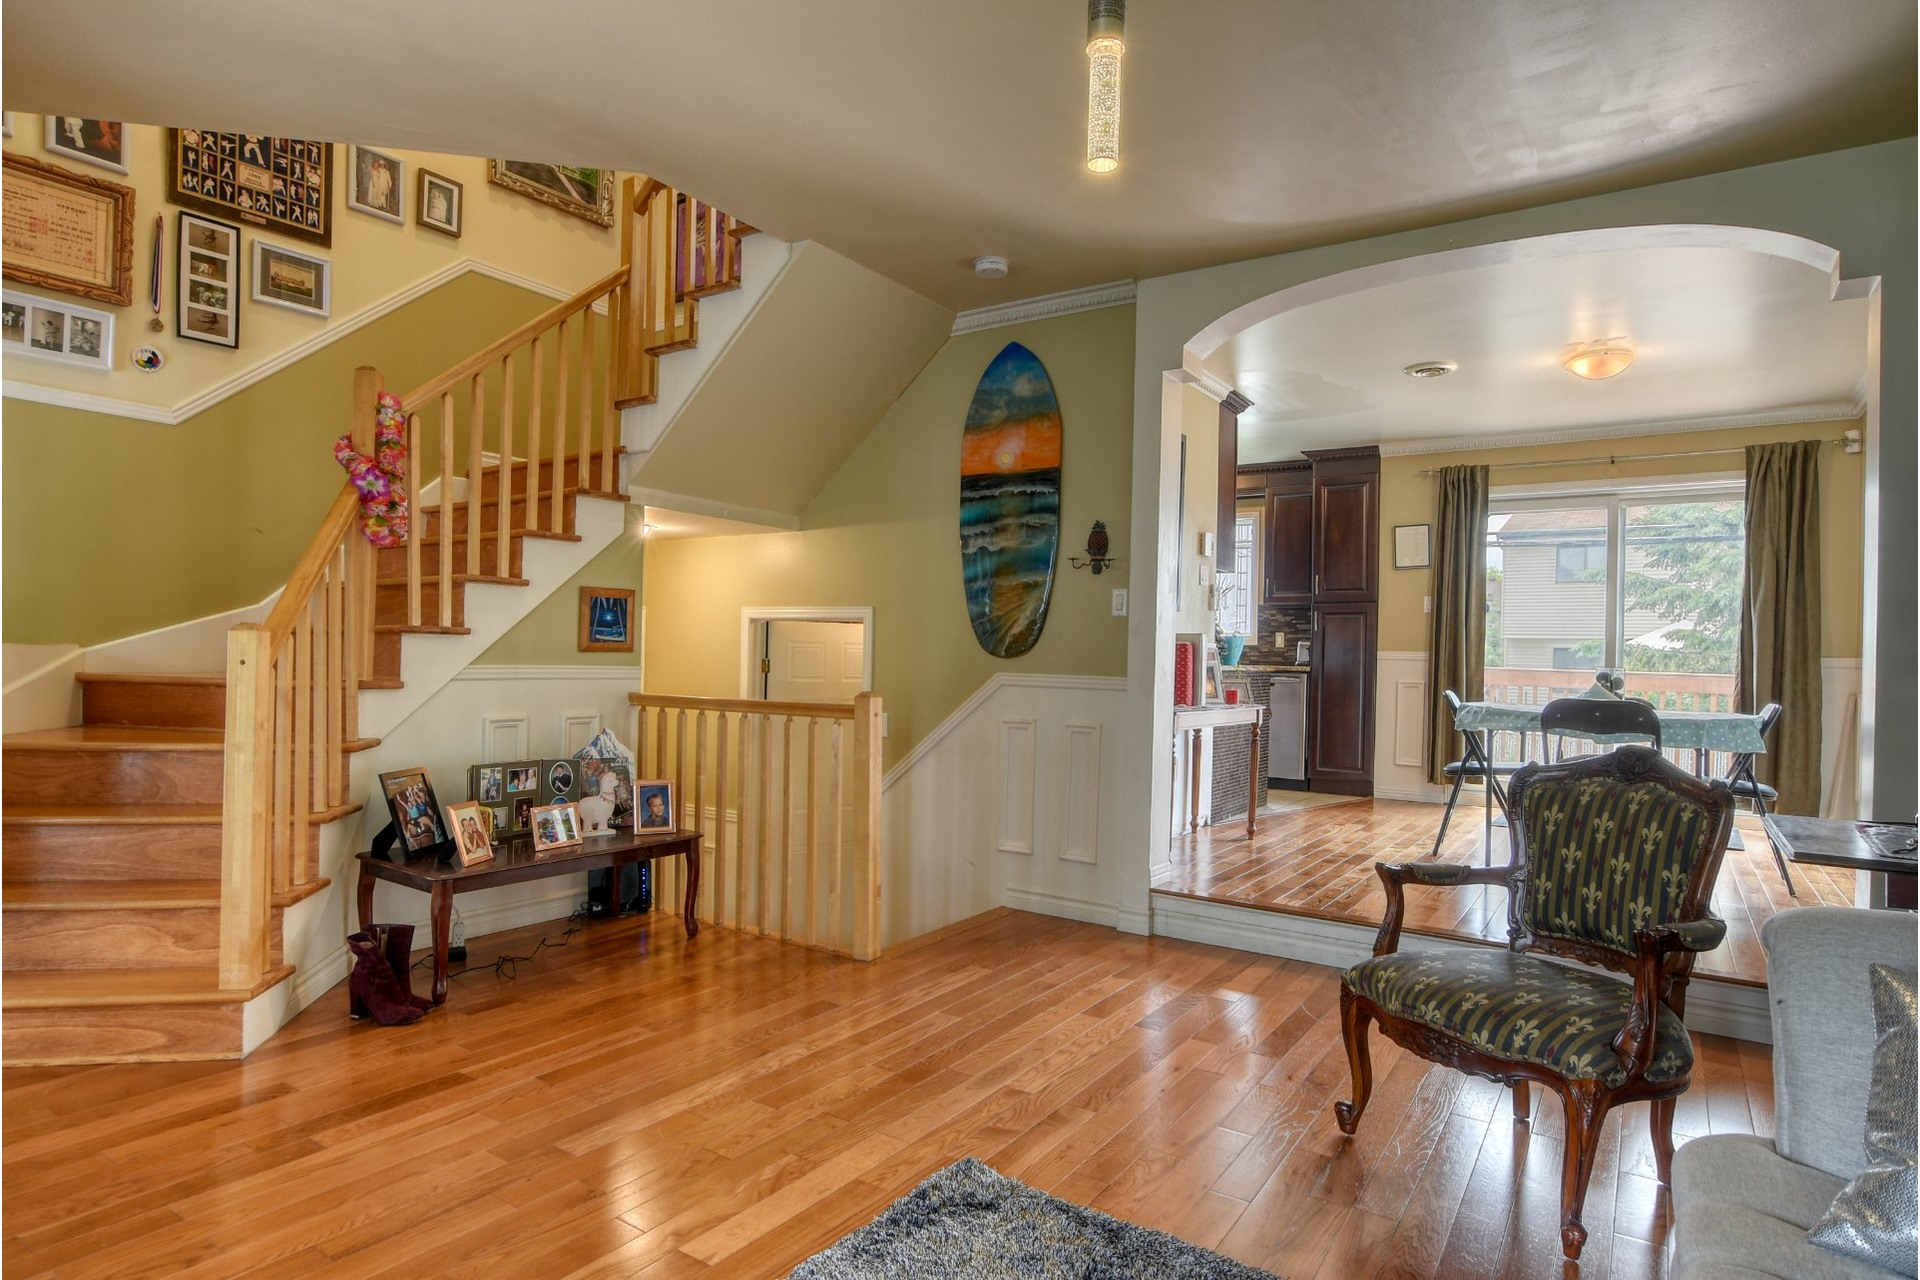 image 3 - House For sale Pointe-Claire - 8 rooms